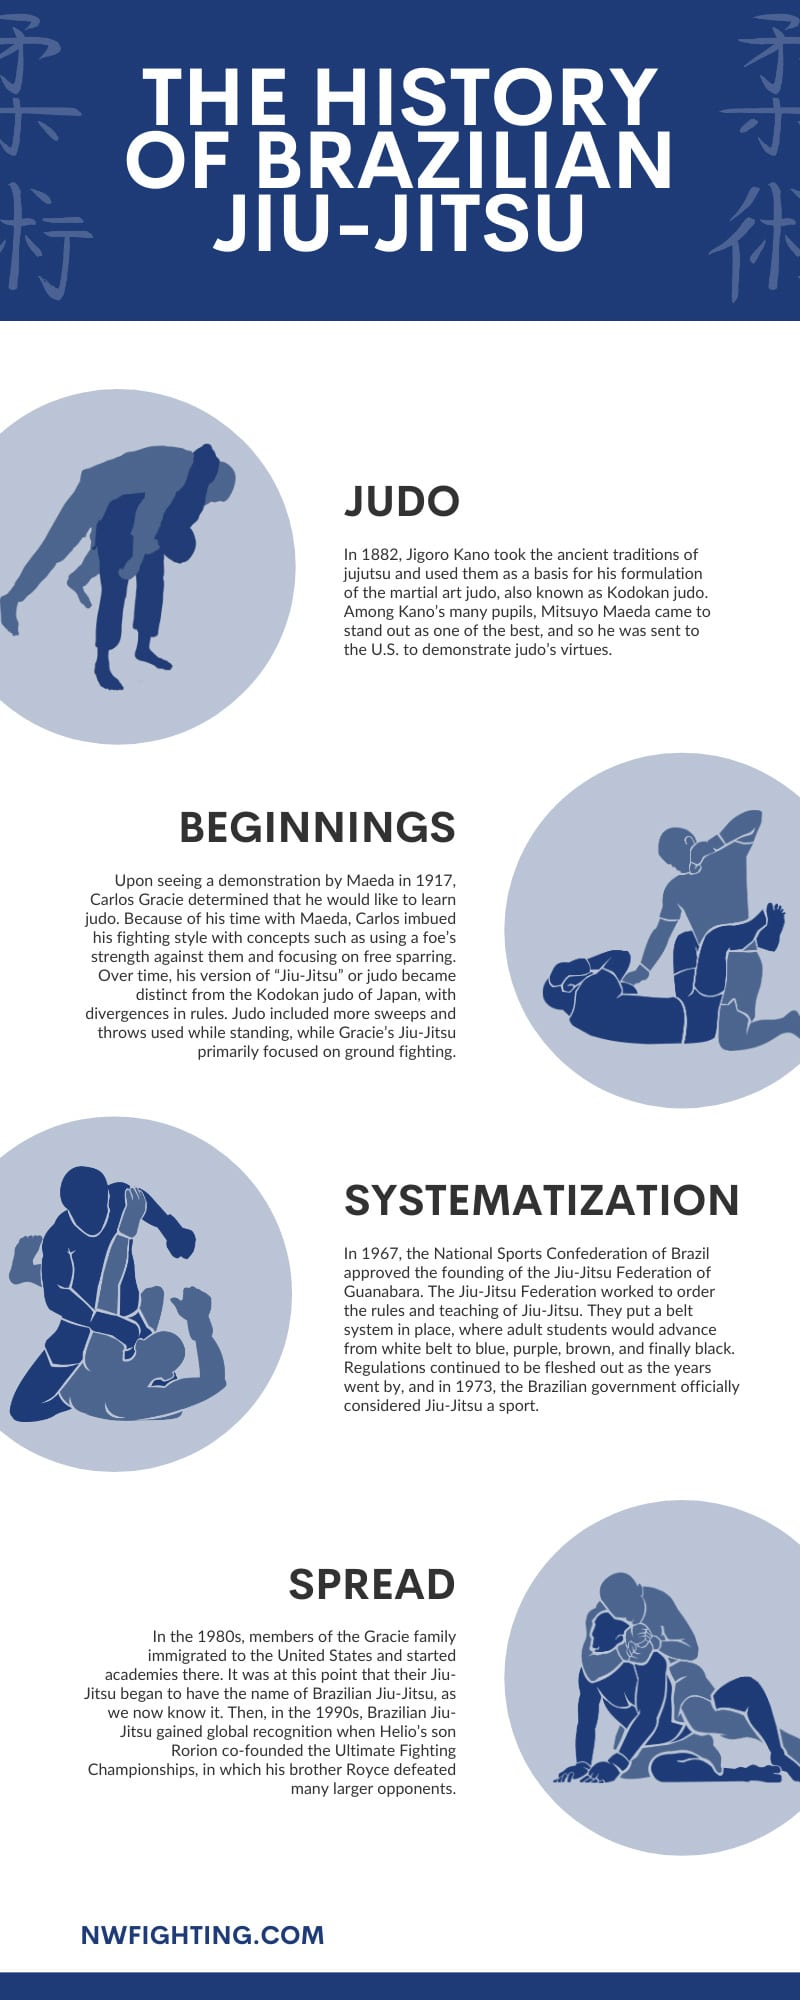 The History of Brazilian Jiu-Jitsu infographic